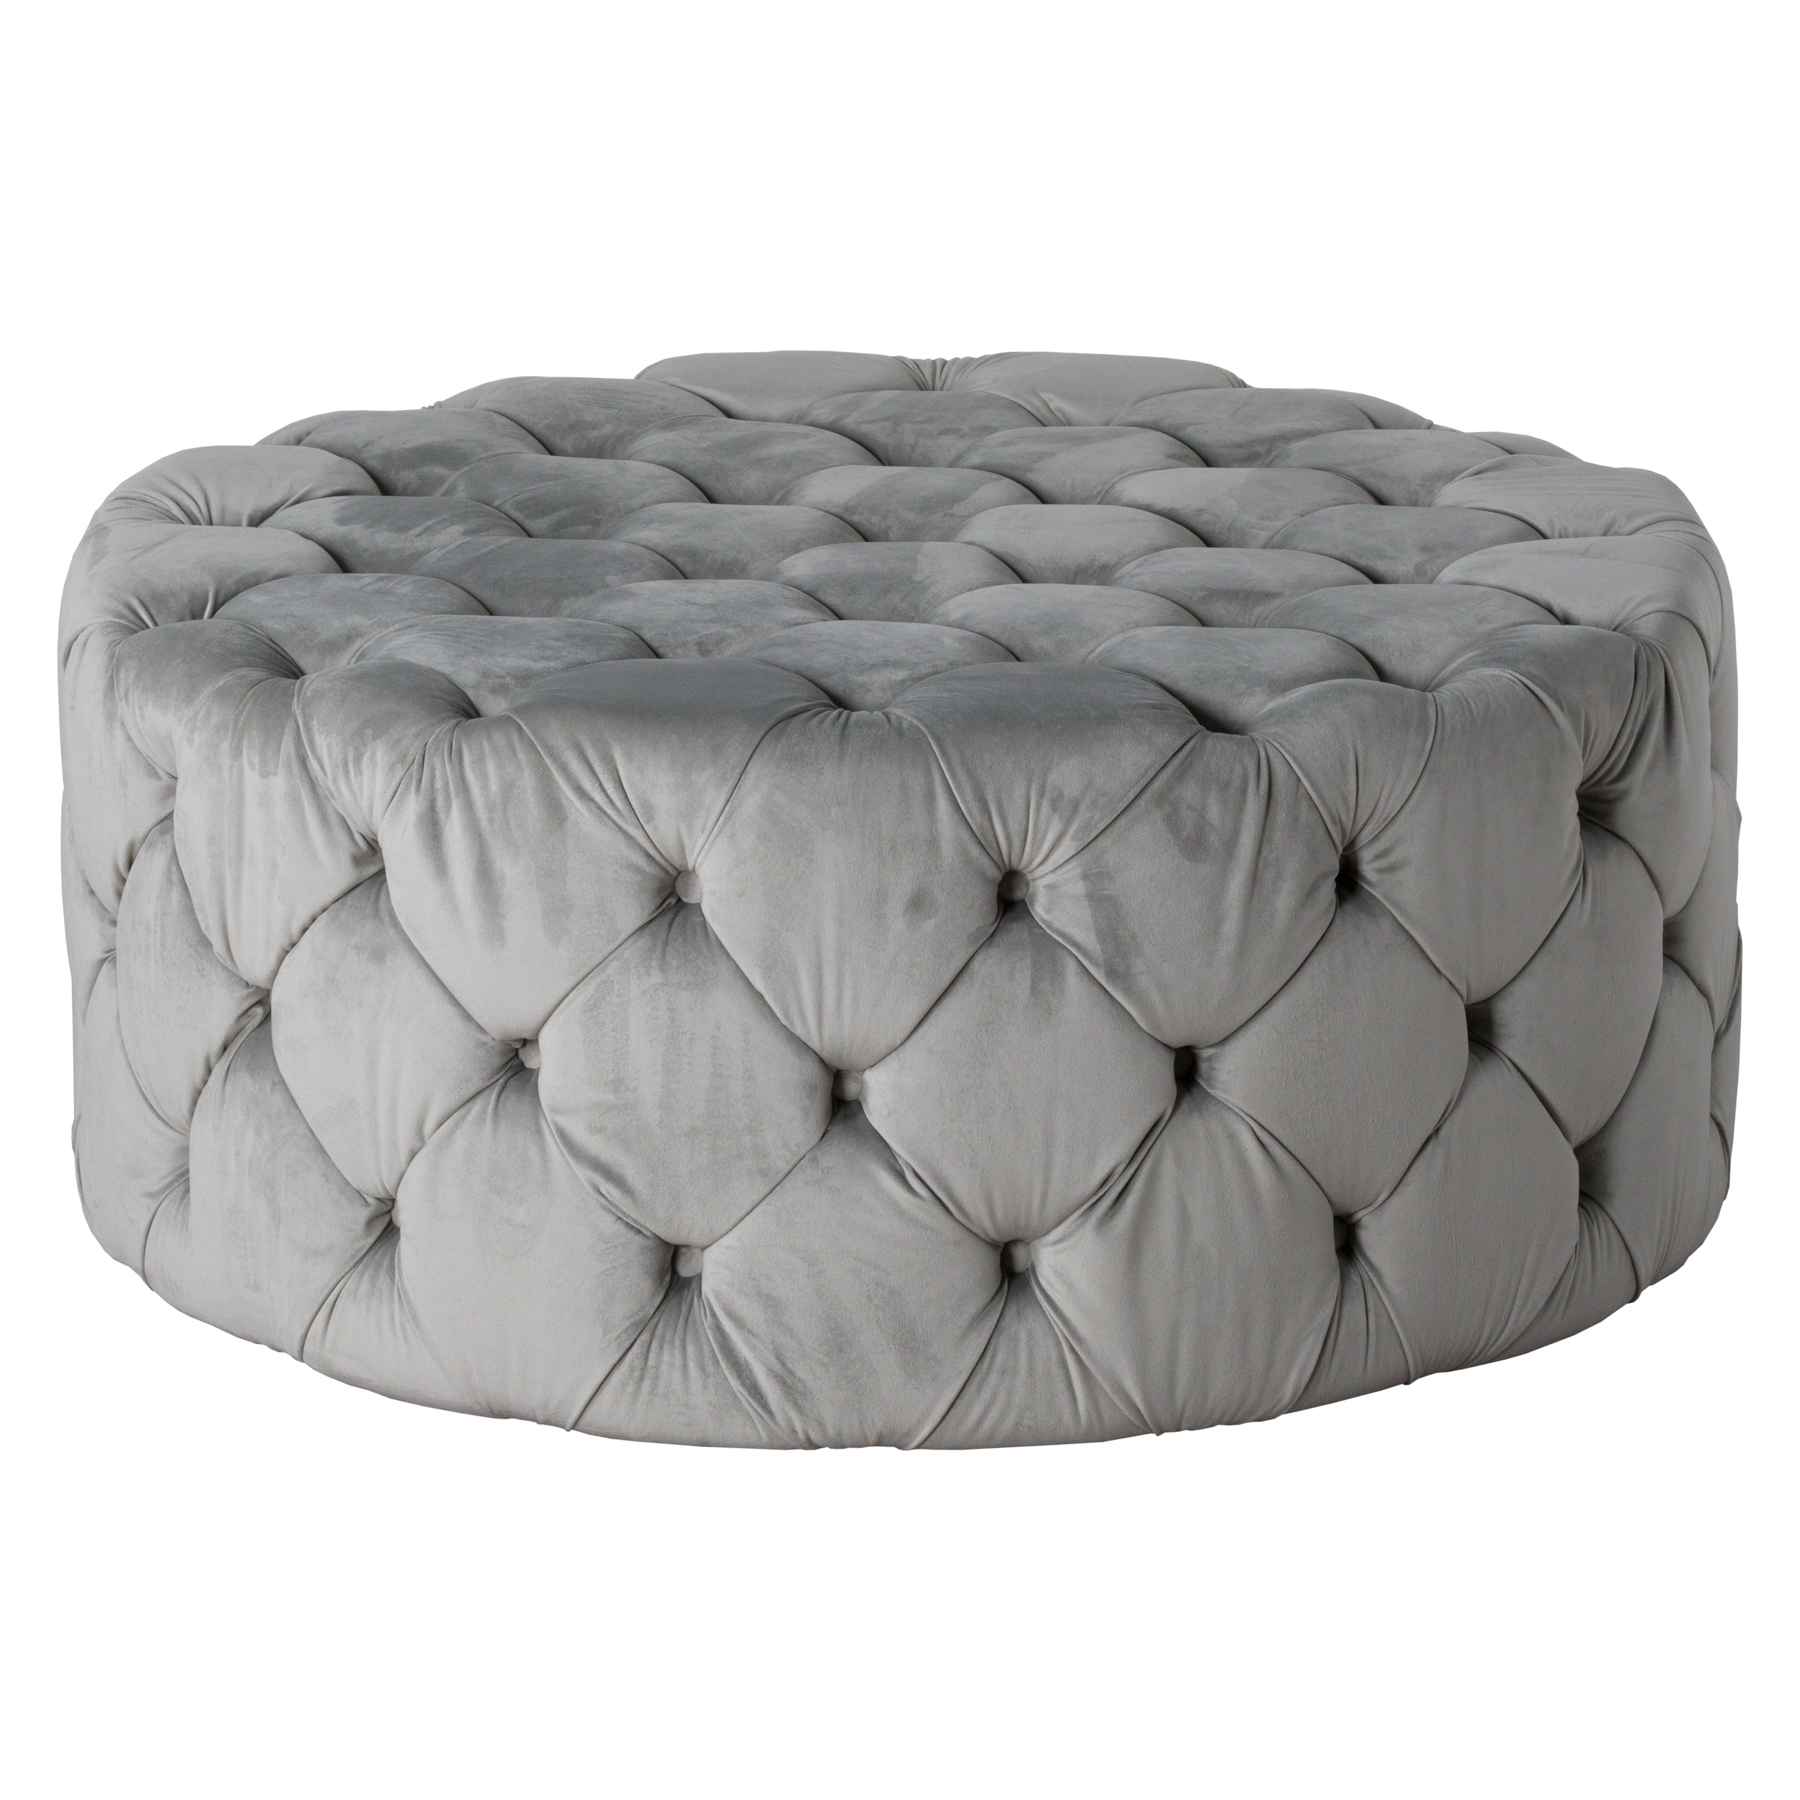 Free Shipping Round Grey Velvet Turfted Ottoman Footstool Low Coffee Table